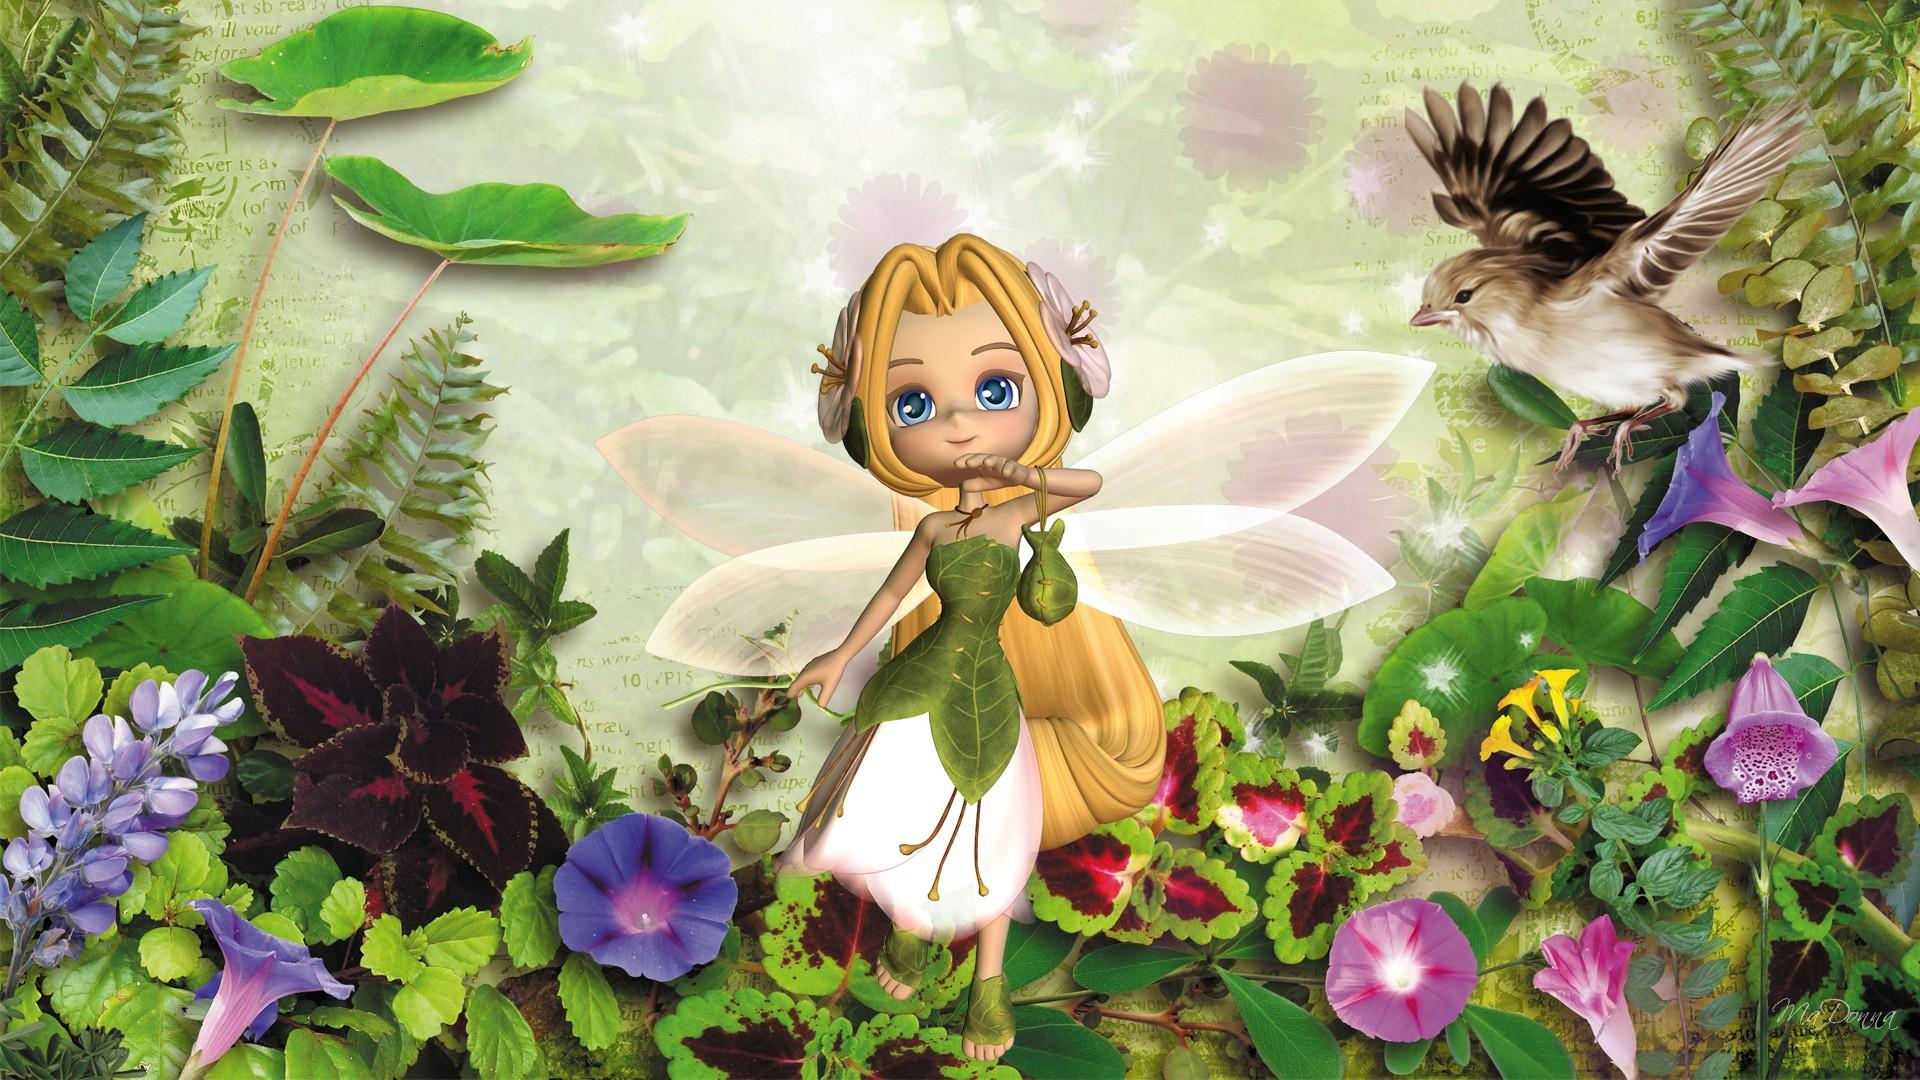 Cute Cartoon Bird Wallpapers Tiny Spring Fairy Wallpaper Nature And Landscape